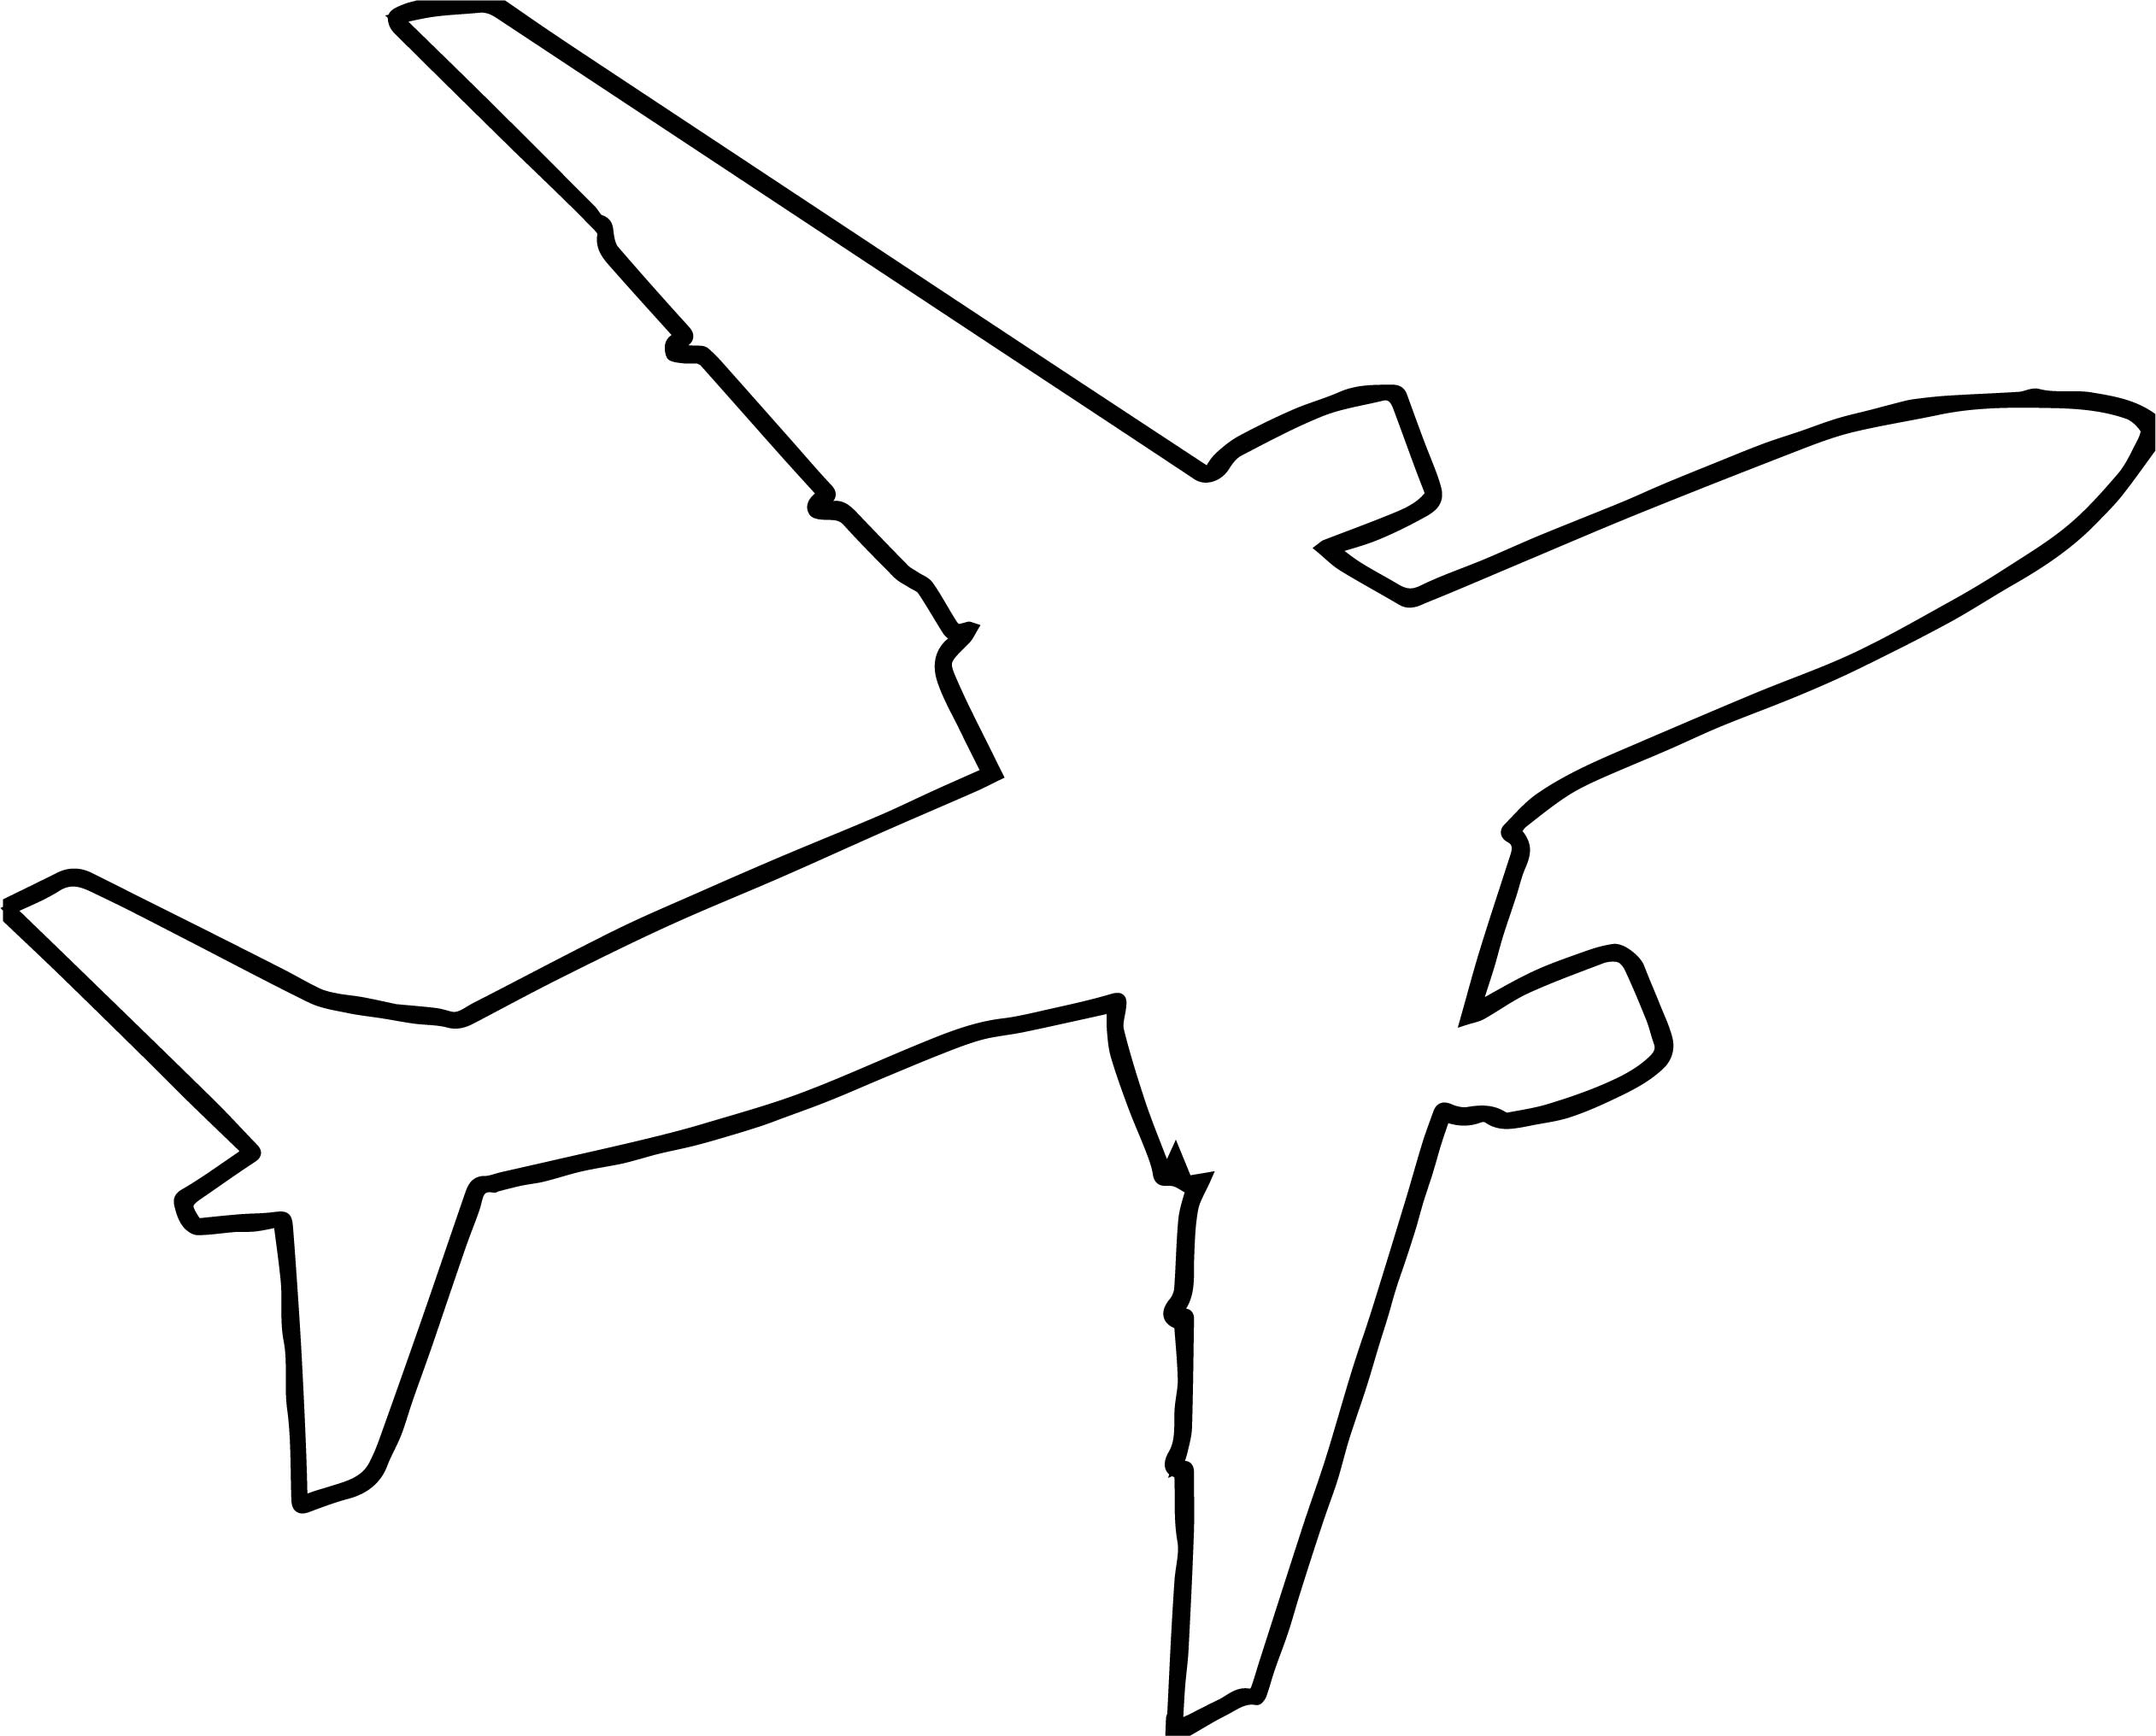 airplane outline silhouette coloring page wecoloringpage